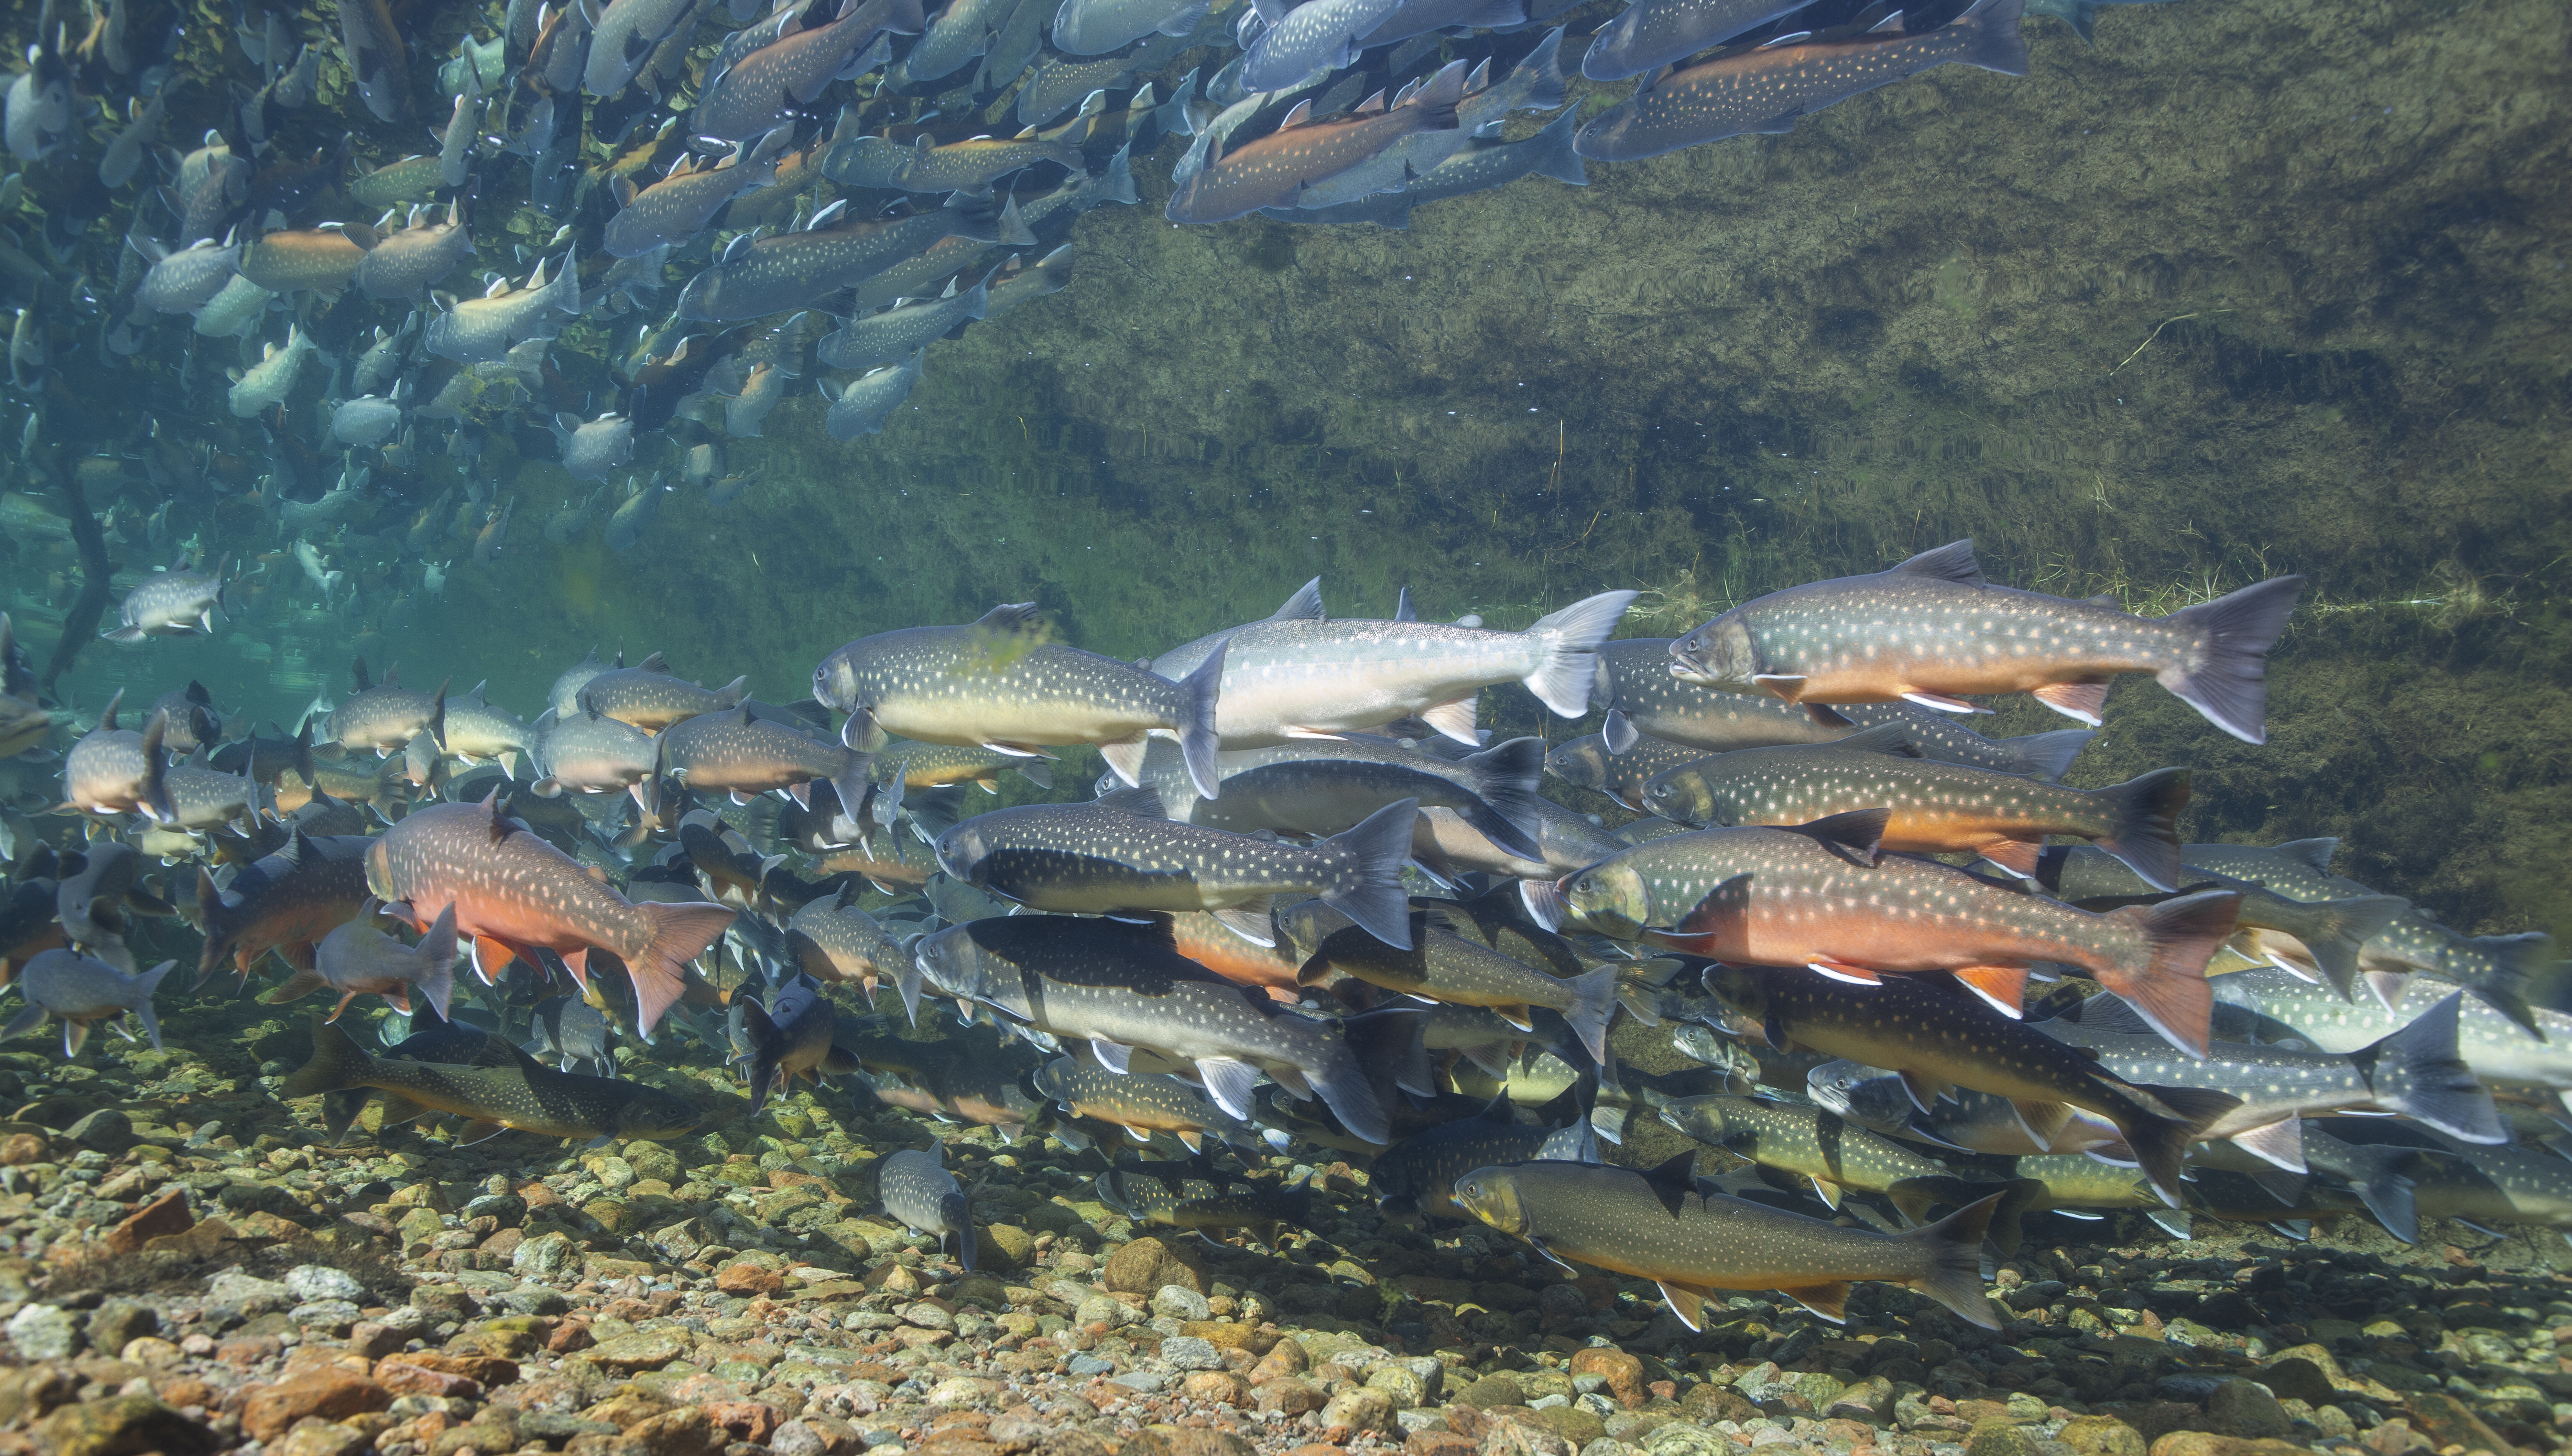 Arctic char stocks in Iceland's rivers and lakes are being depleted